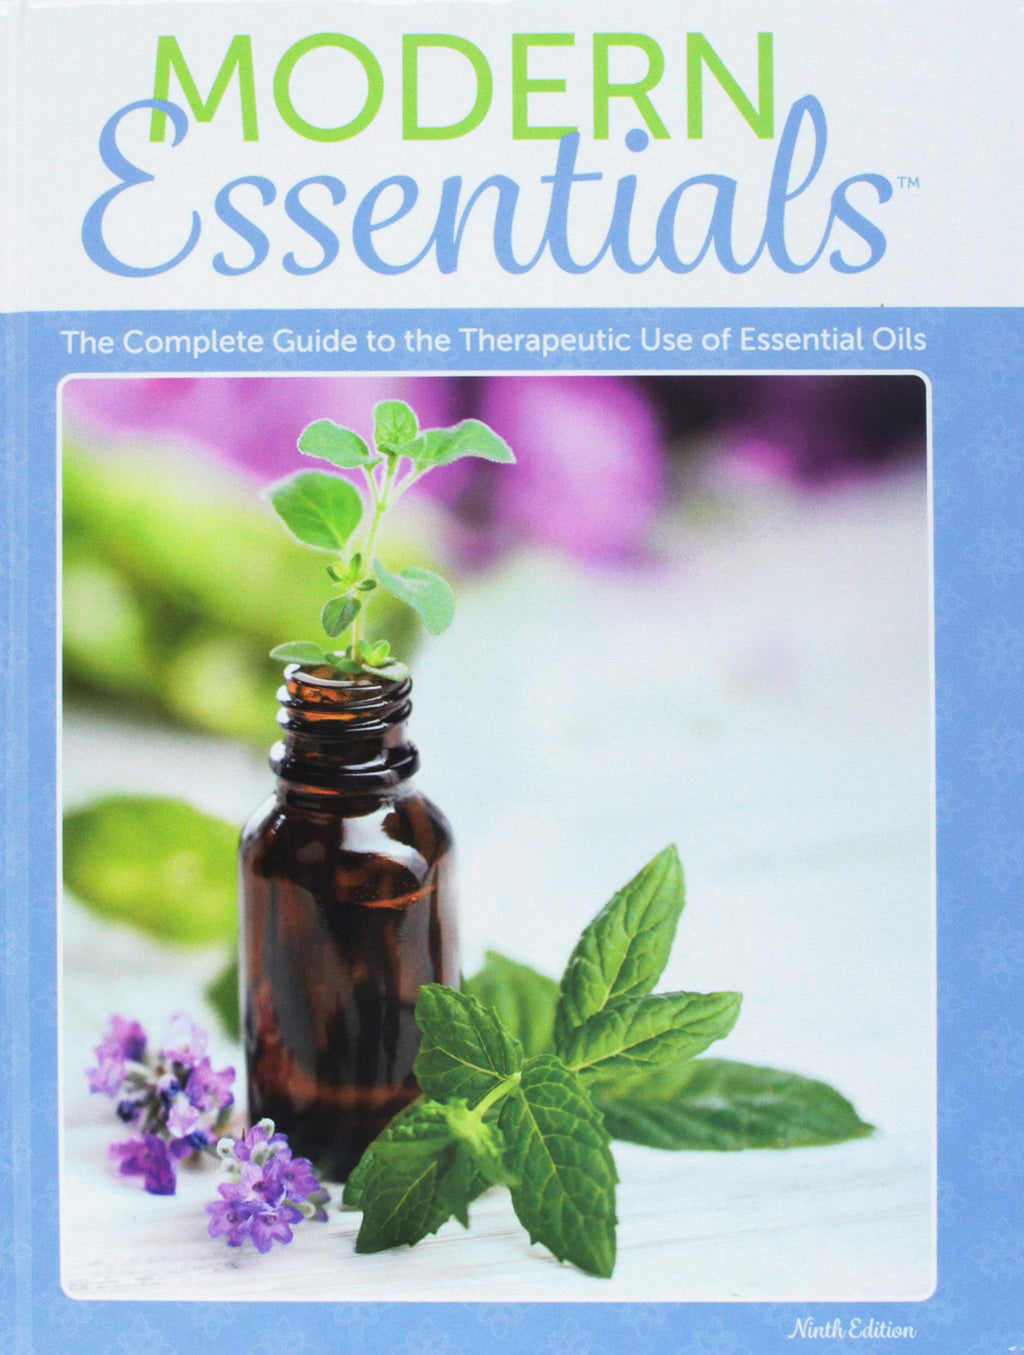 Modern Essentials: A Contemporary Guide to the Therapeutic Use of Essential Oils (9th Edition) Hardcover Book